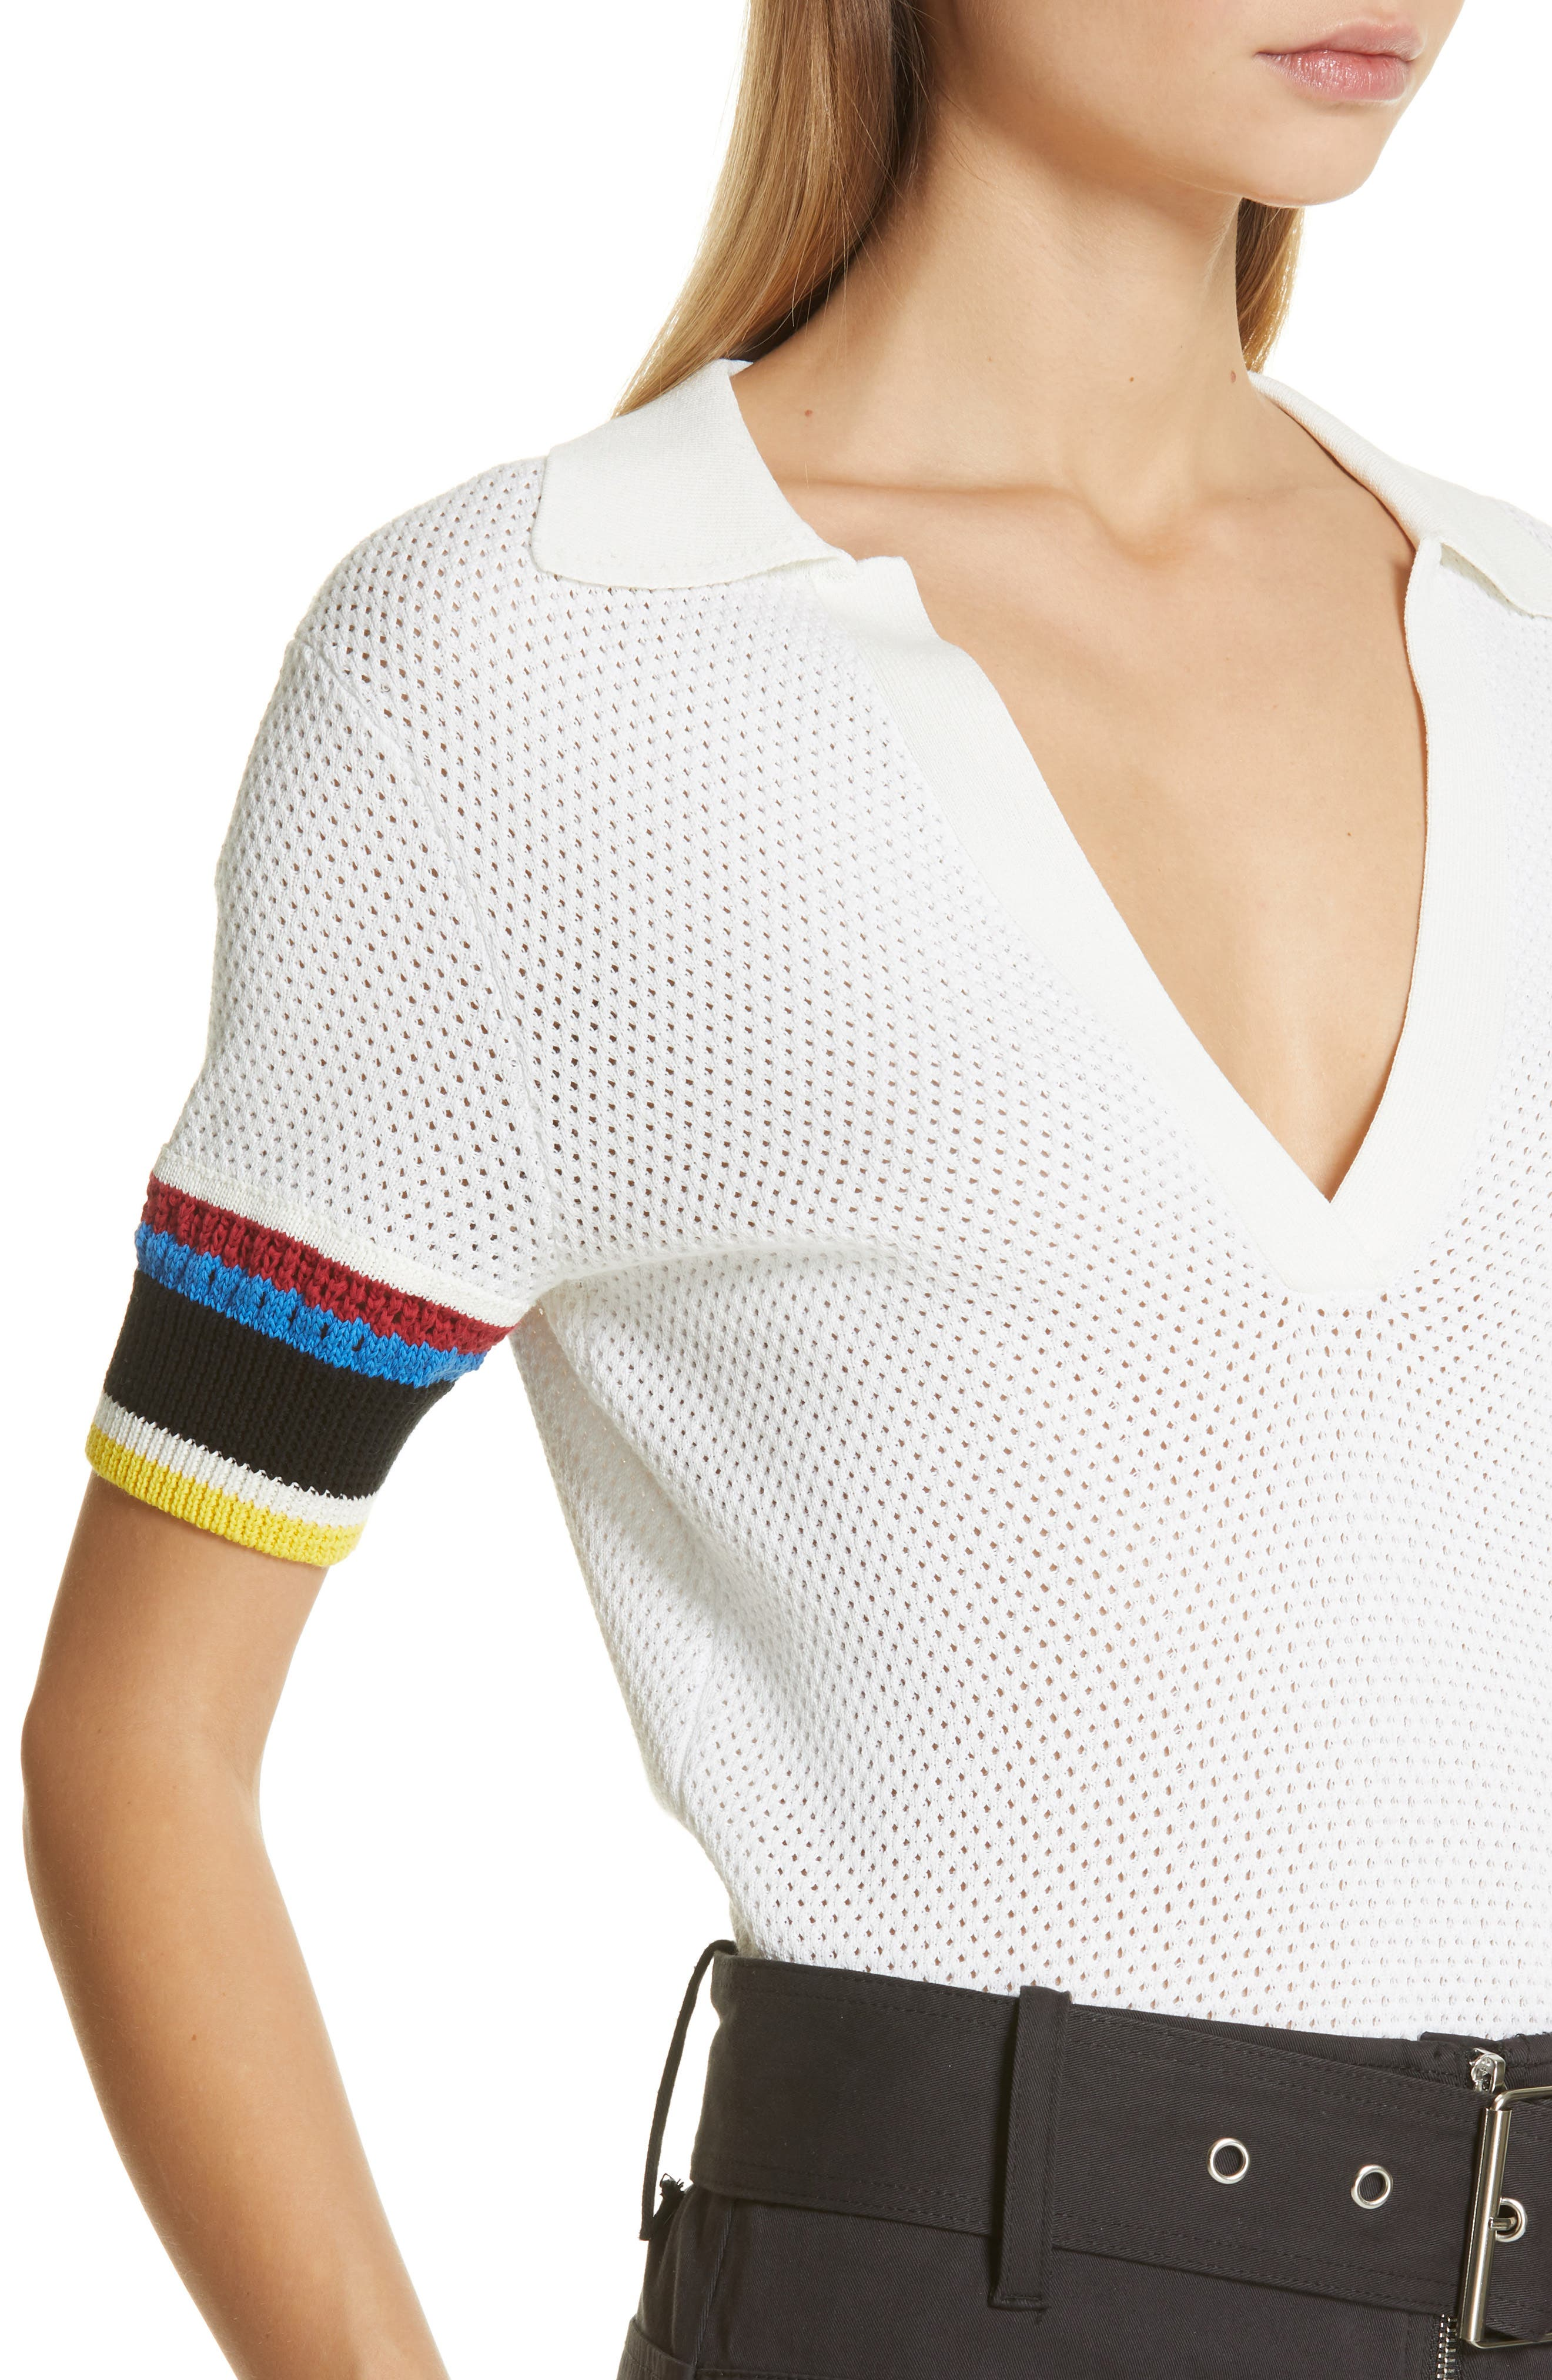 PROENZA SCHOULER, PSWL Stripe Sleeve Polo Top, Alternate thumbnail 4, color, OFF WHITE